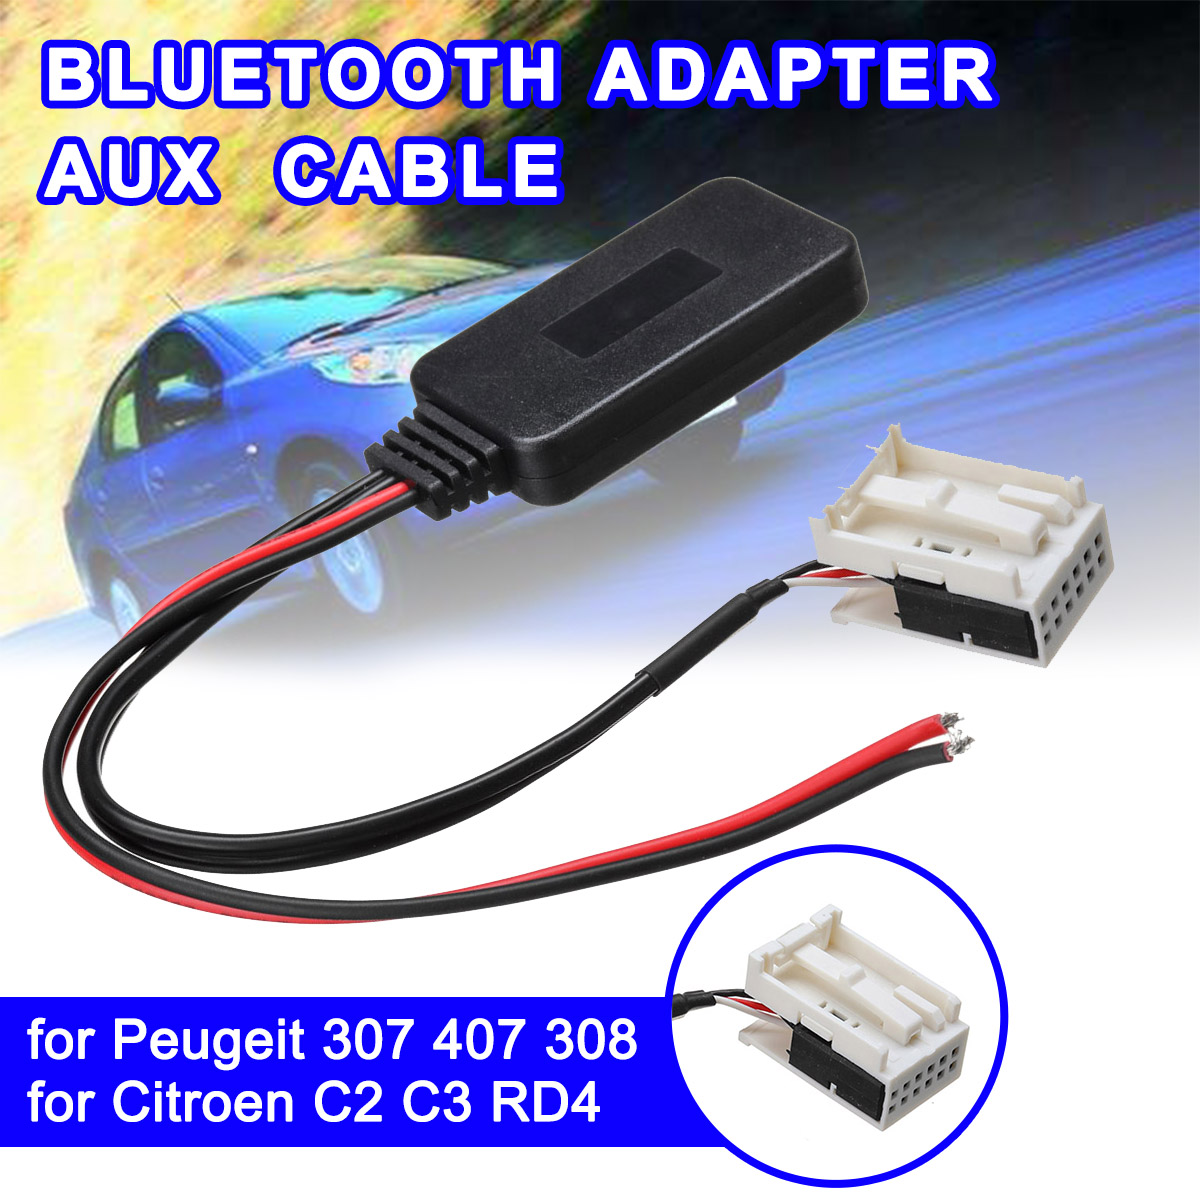 AUX-IN Aux Cable <font><b>Adapter</b></font> Car Wireless Radio Stereo 12Pin <font><b>bluetooth</b></font> Module for <font><b>Peugeot</b></font> 207 307 <font><b>407</b></font> 308 for Citroen C2 C3 RD4 image